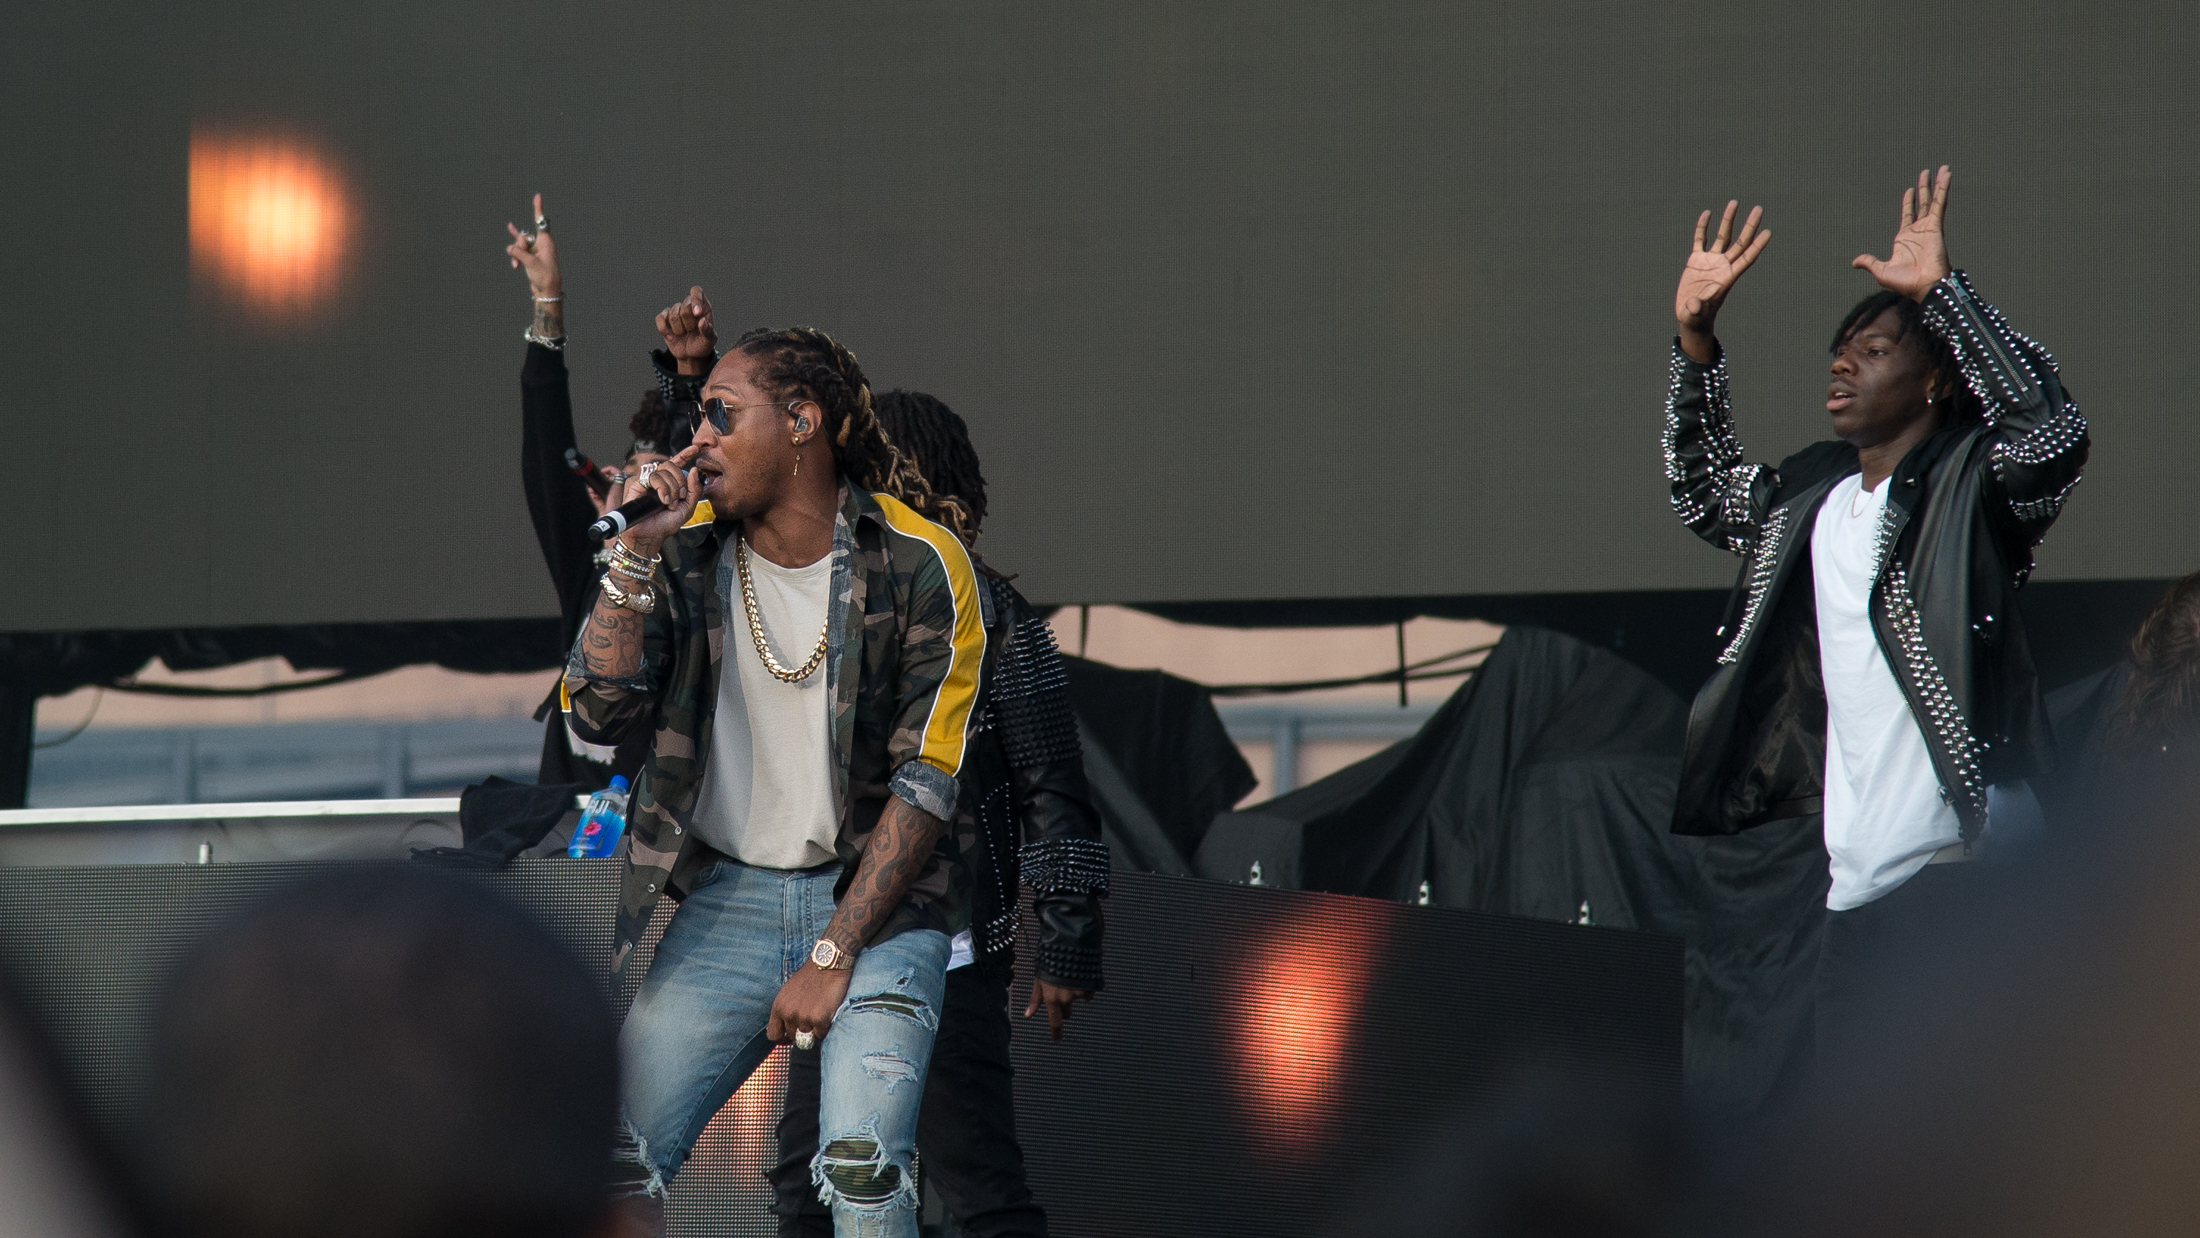 Future performs during the early evening on day two of The Meadows Music and Art Festival at Citi Field on Sat. Sept. 16, 2017. (Amar Batra/The Daily Campus)